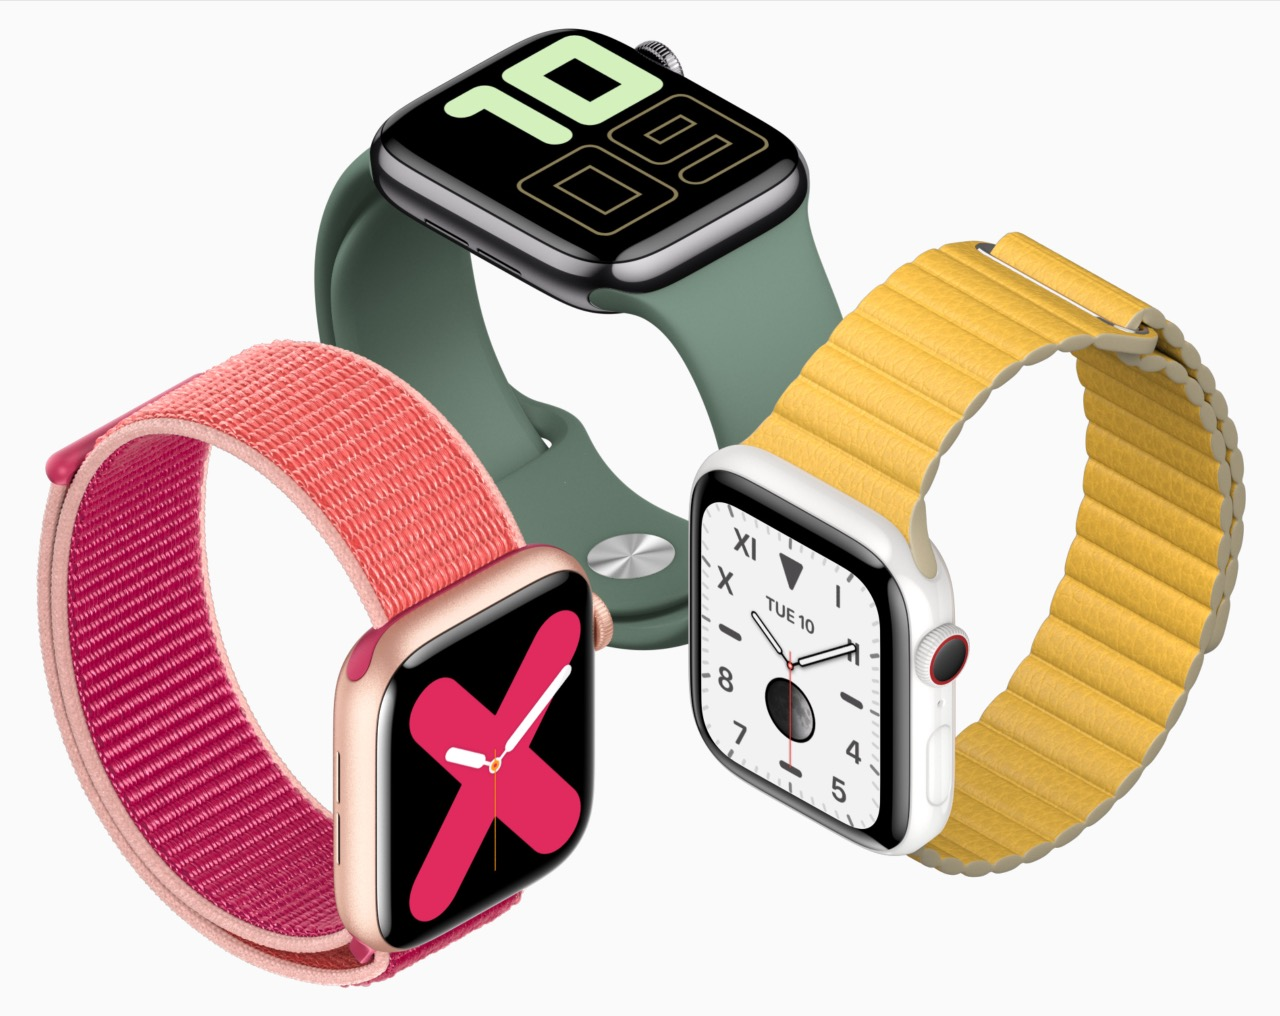 How to tell what Apple Watch model is which